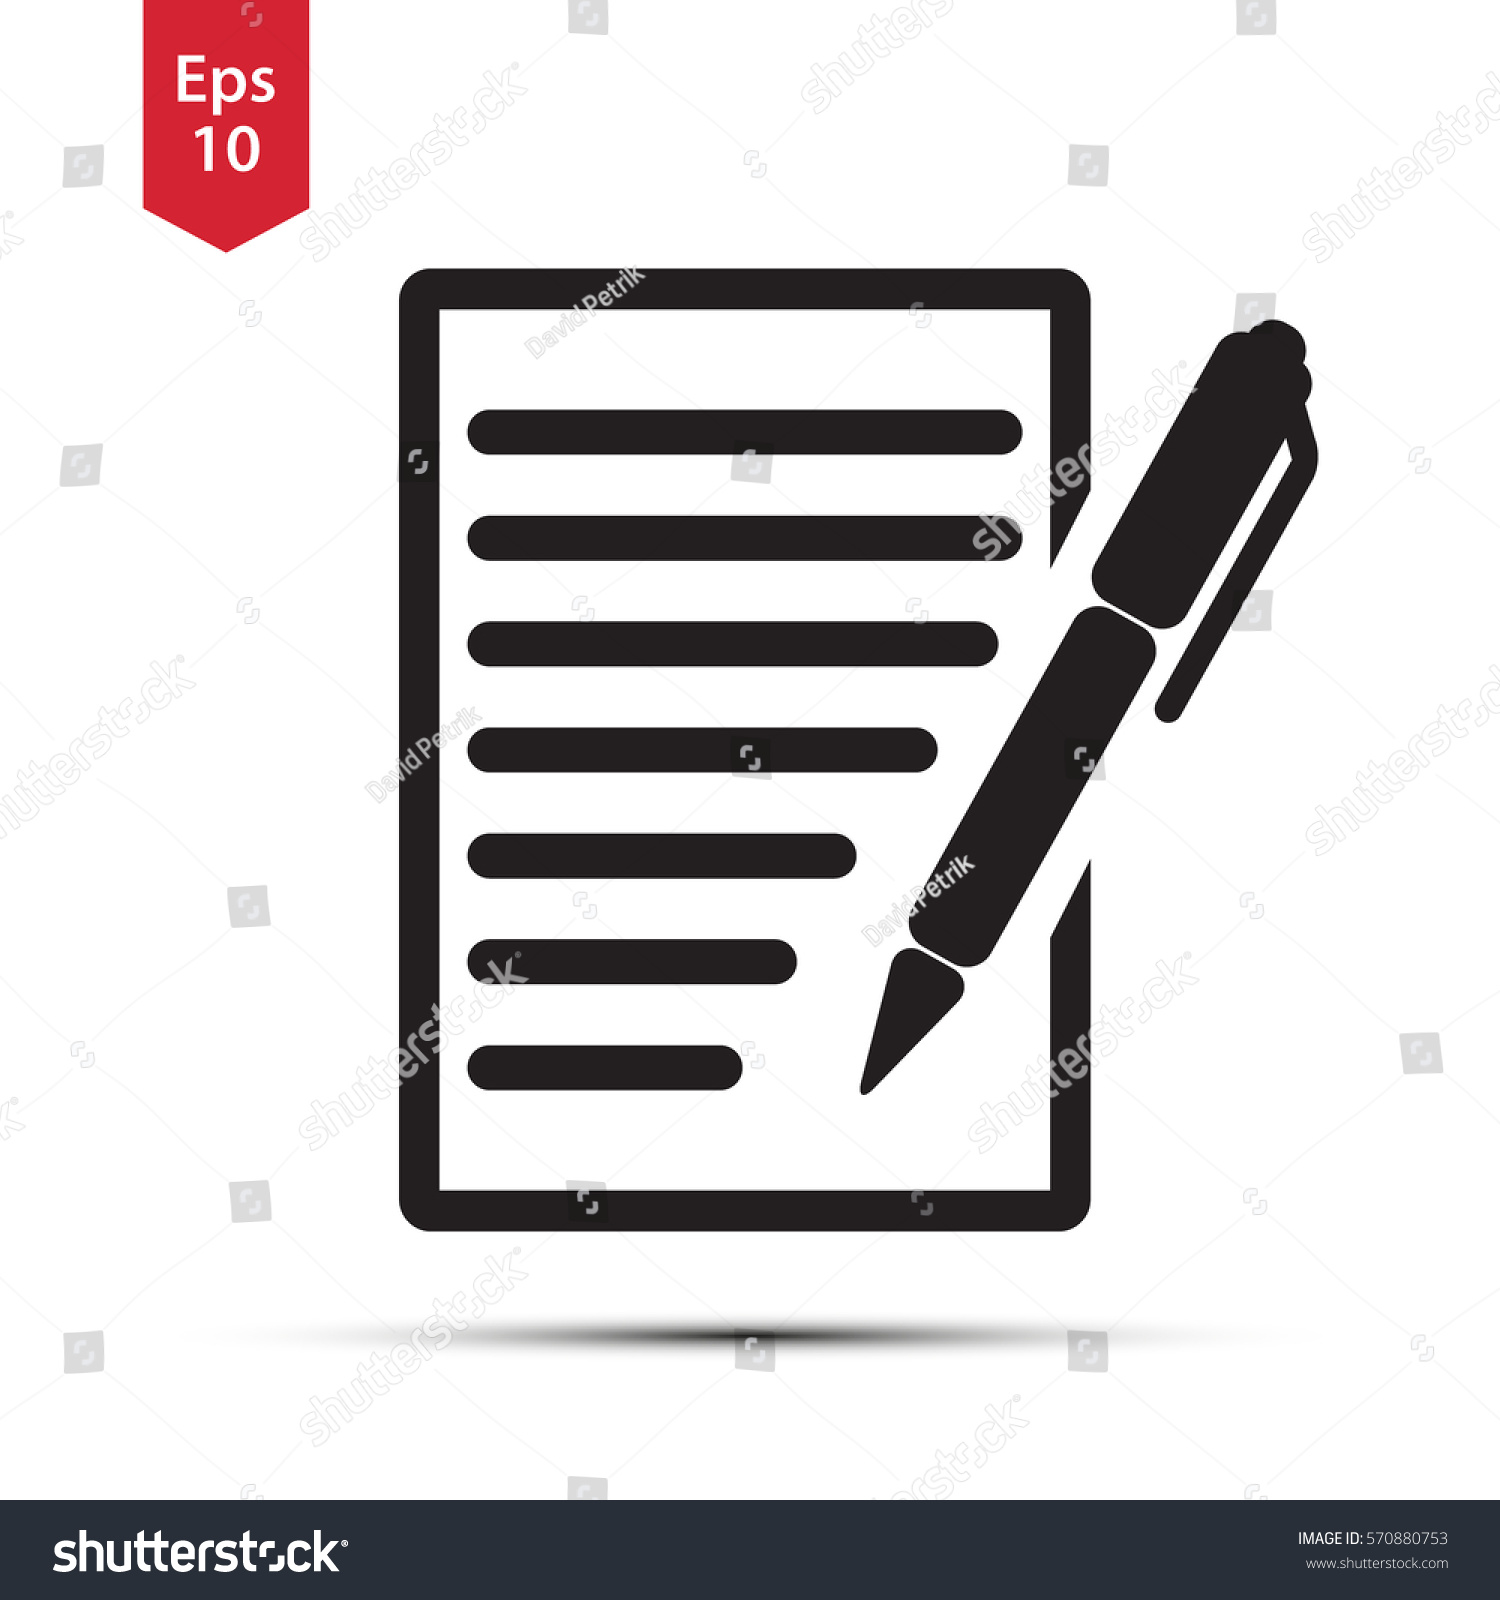 Notepad symbol simple flat icon paper stock vector 570880753 notepad symbol simple flat icon of paper and pen notebook with some text biocorpaavc Choice Image